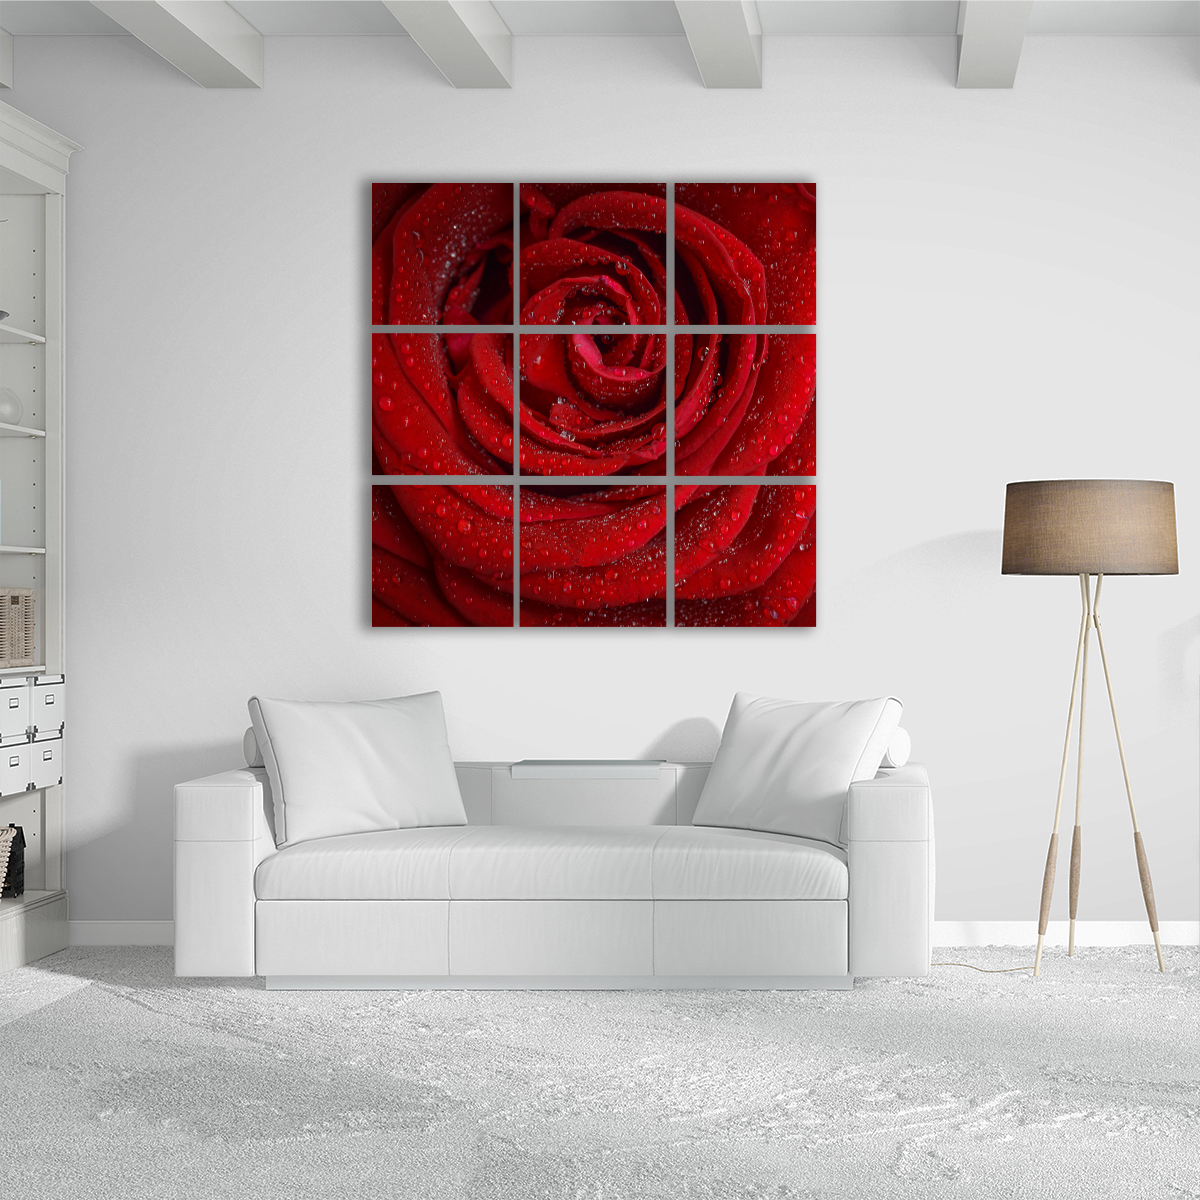 ArtisanHD Wall Art Gallery Clusters and Splits Wall Art Collage